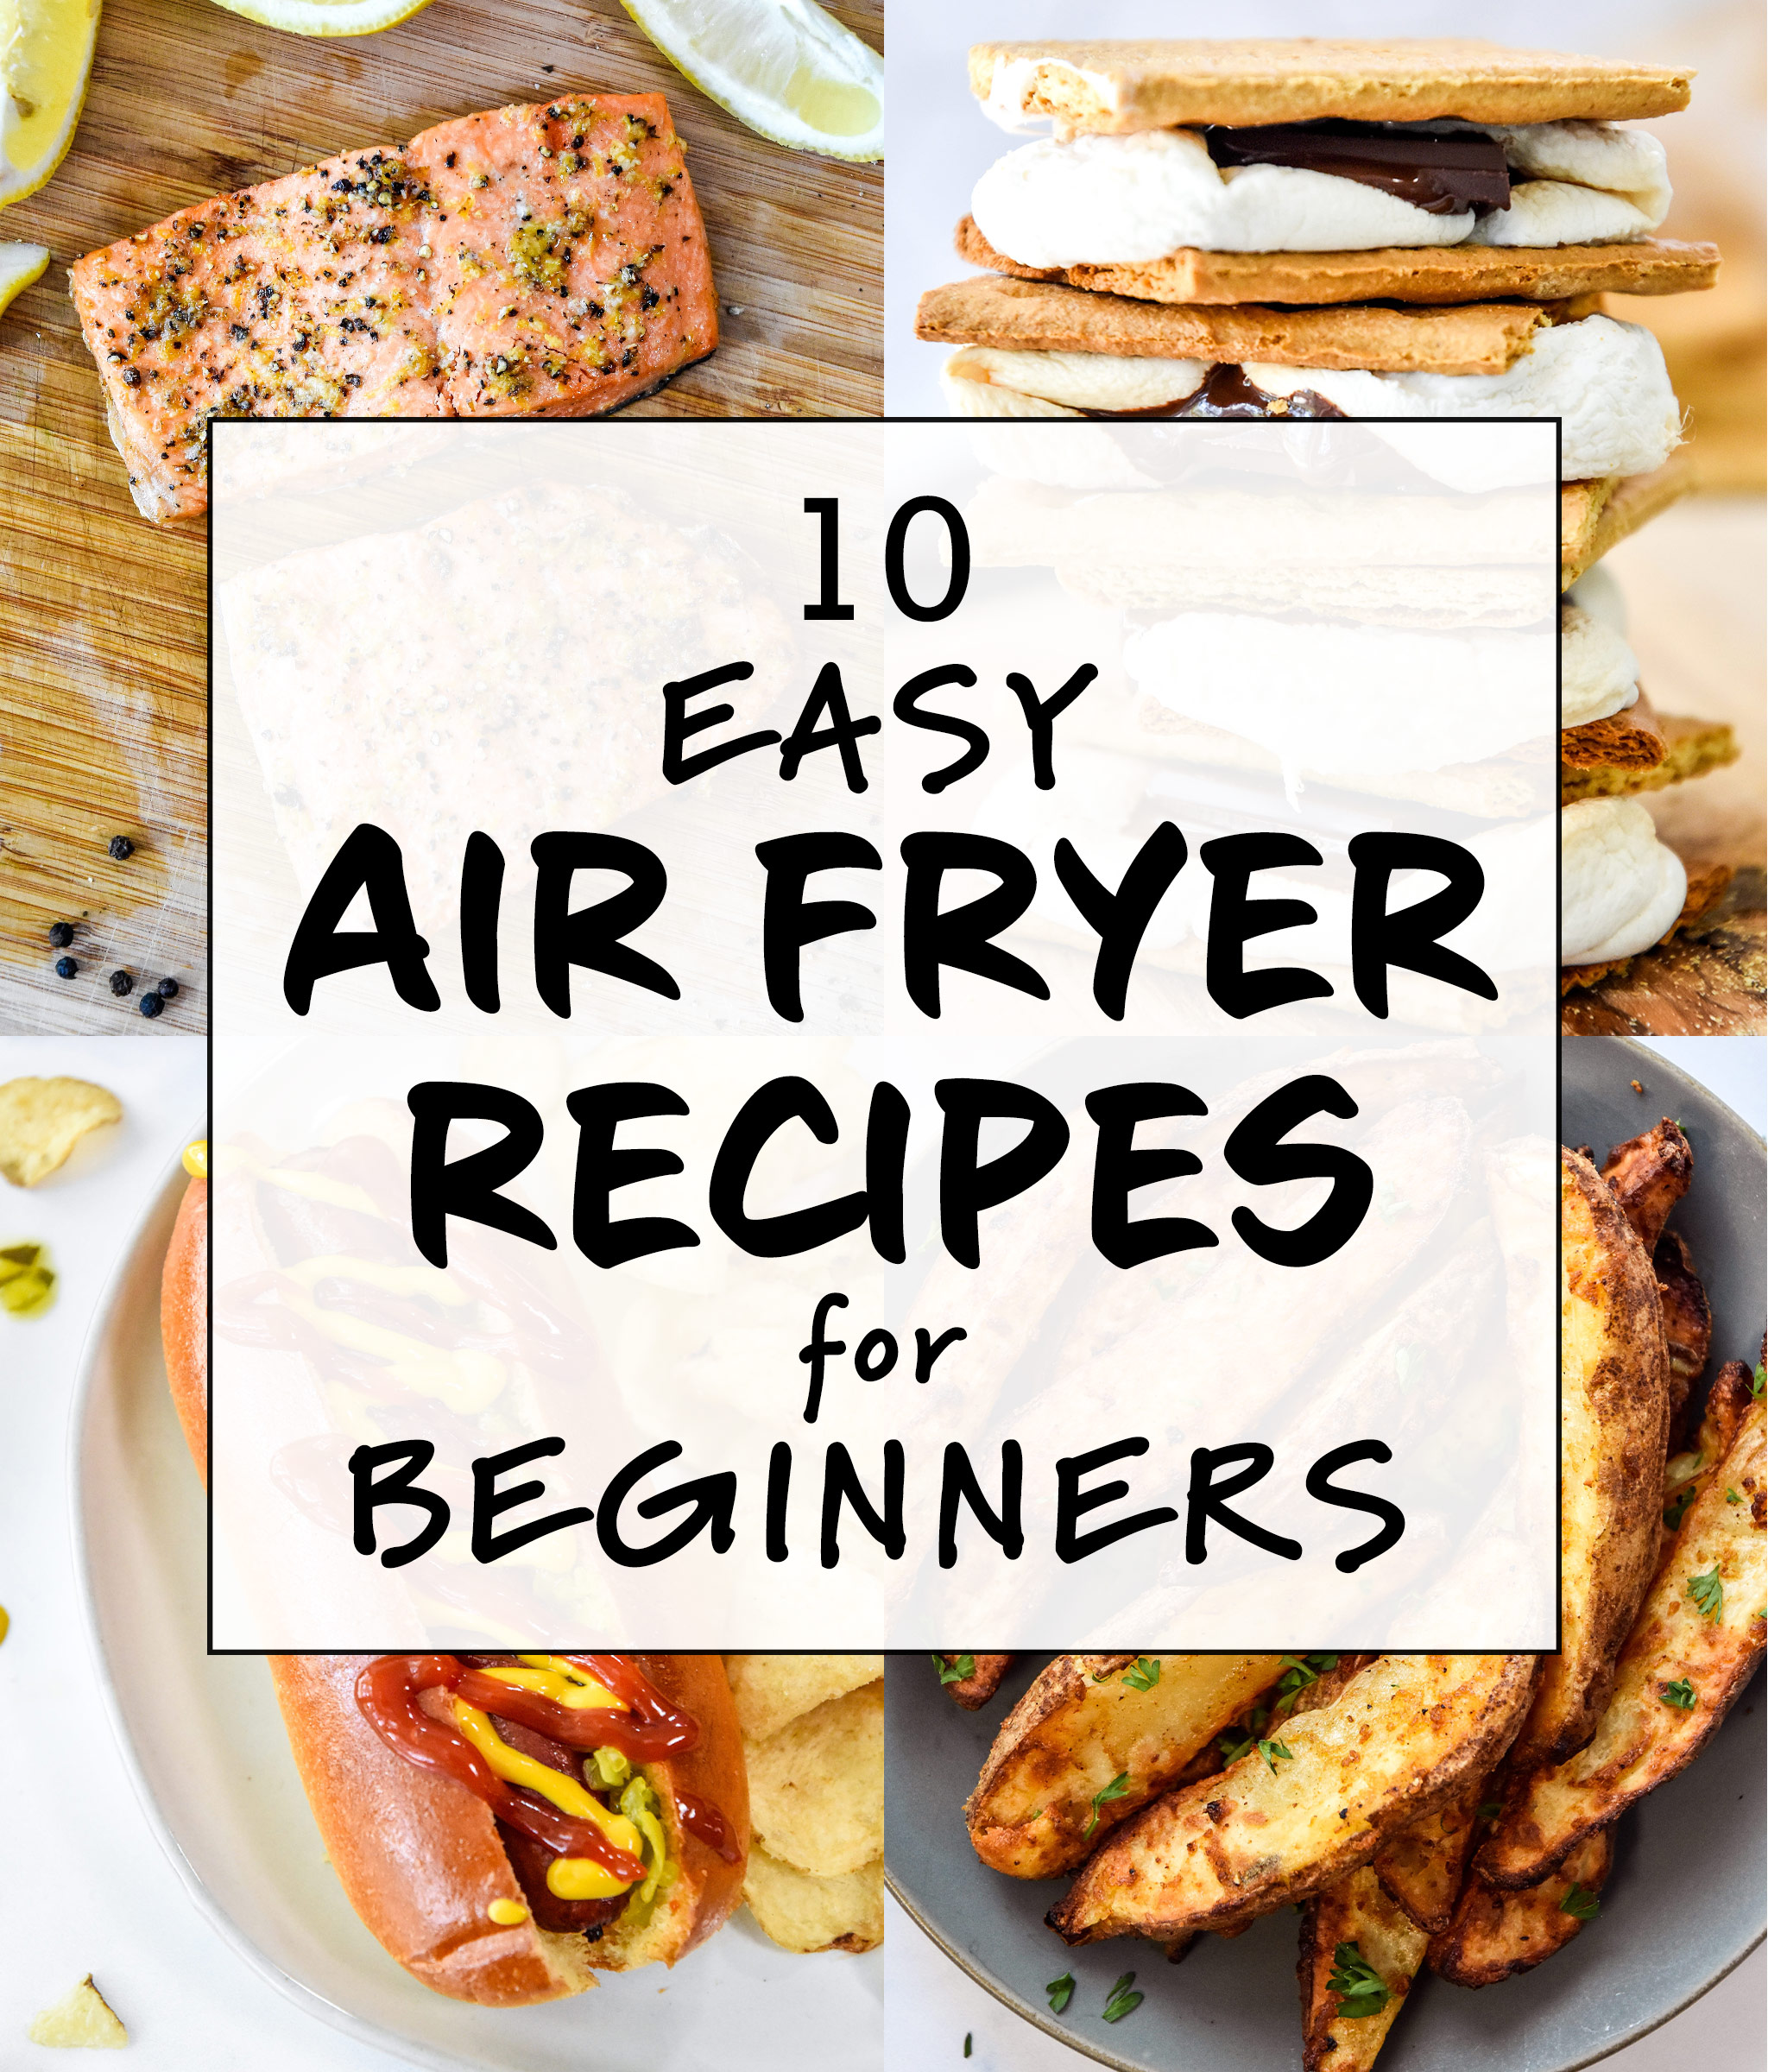 cover image for the post 10 easy air fryer recipes for beginners with potato wedges, salmon, hot dogs, and smores.